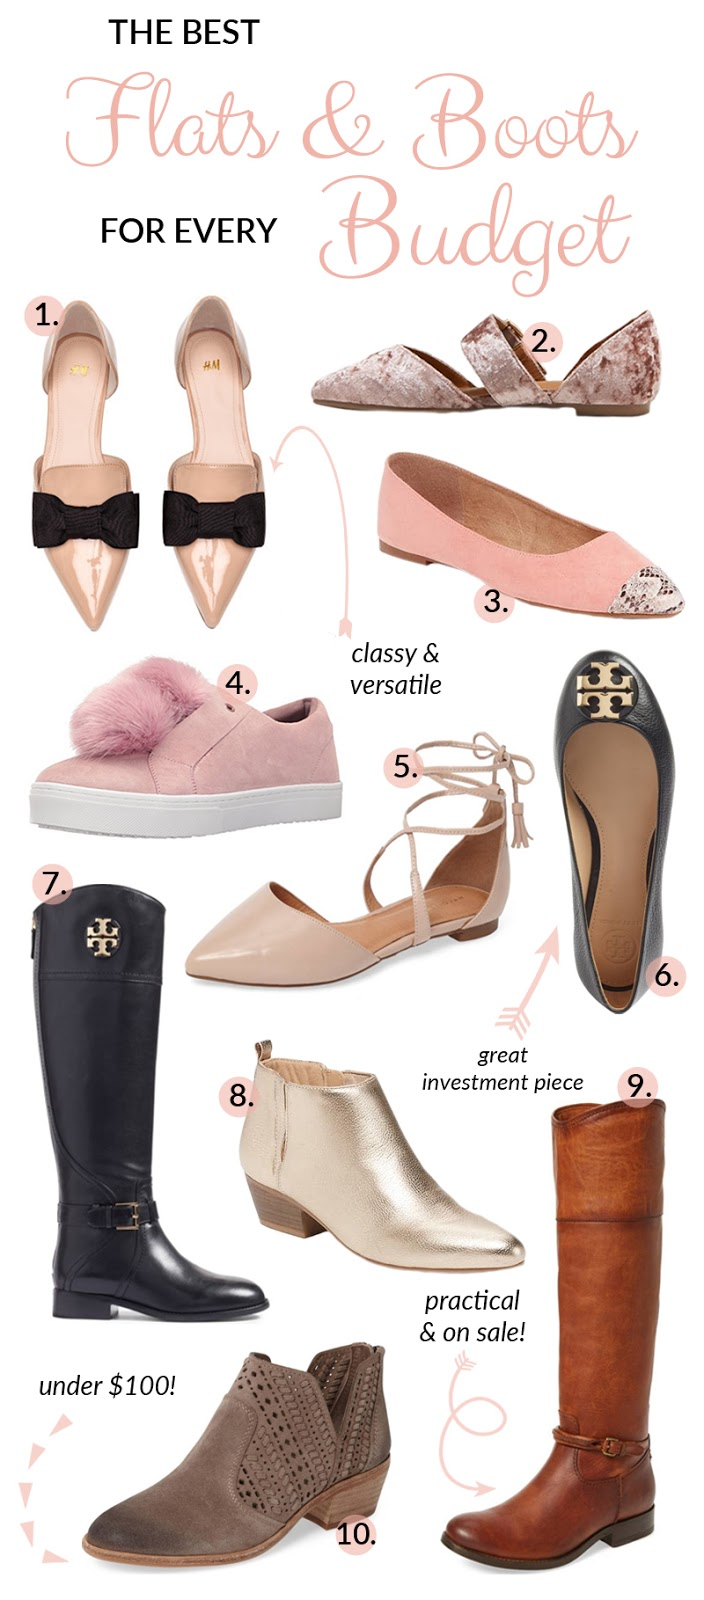 The Best Flats & Boots for Every Budget by Memphis blogger Walking in Memphis in High Heels